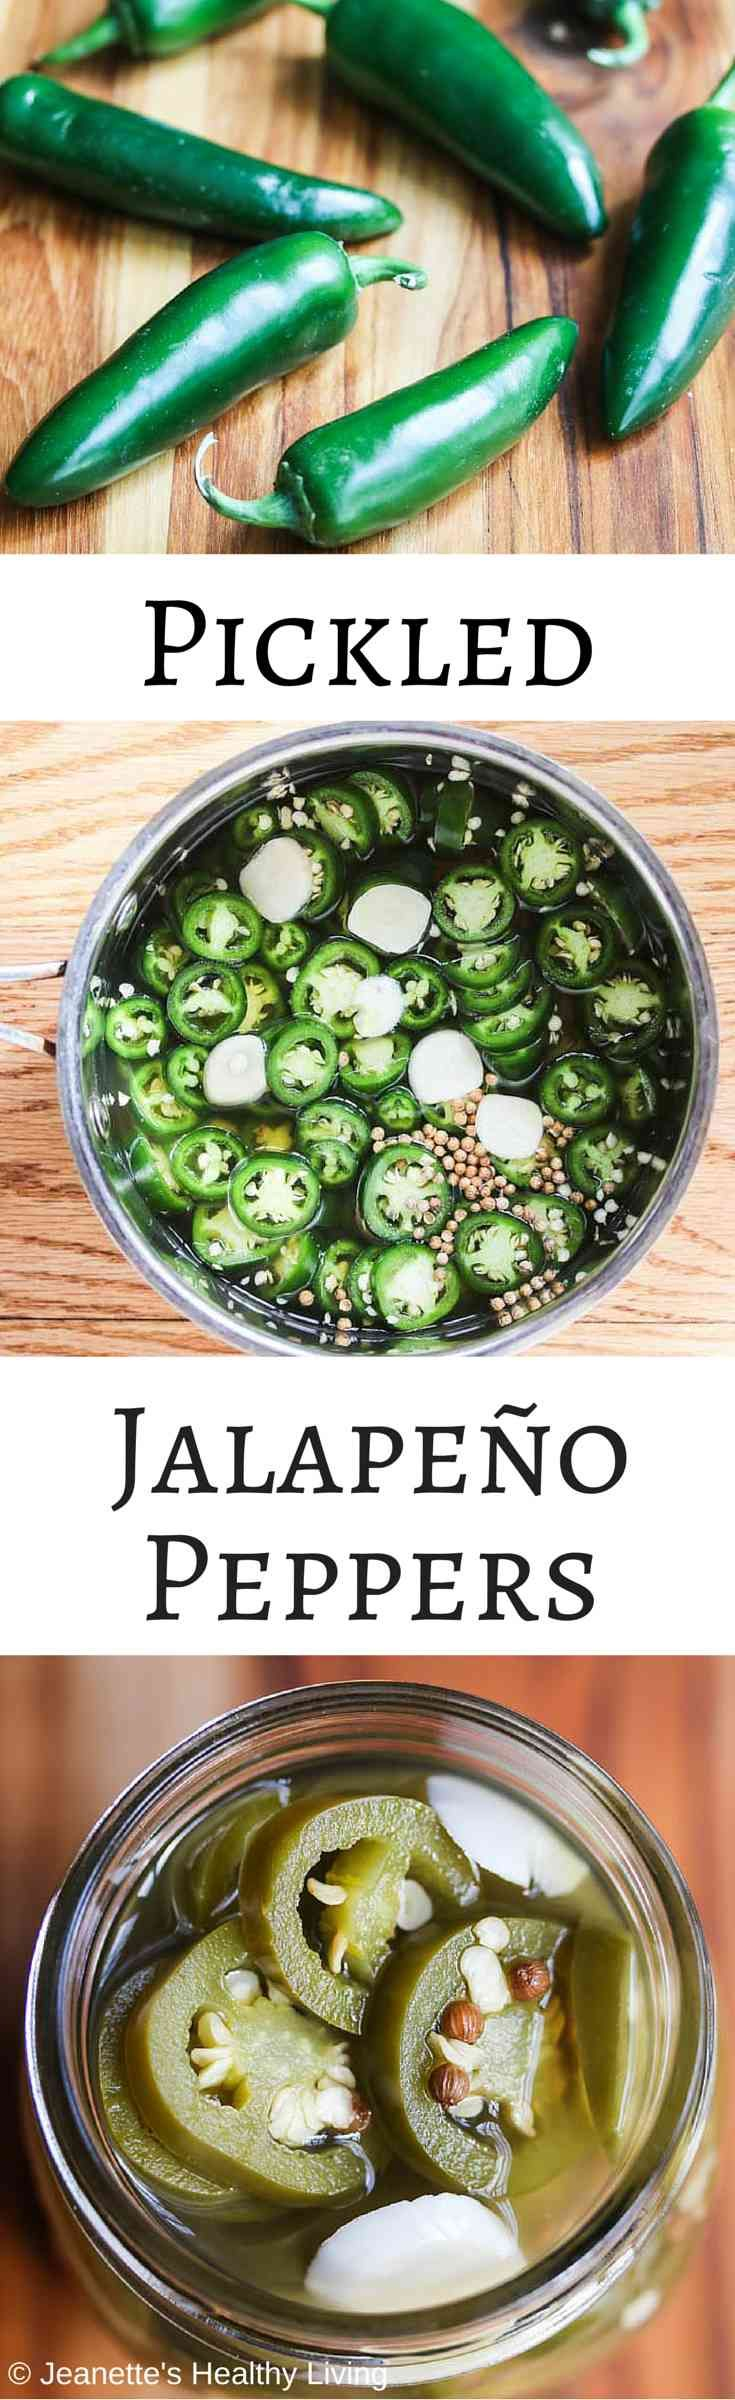 Pickled Jalapeño Peppers - so easy to make at home. Garlic and coriander seeds add a little something special. ~ http://jeanetteshealthyliving.com